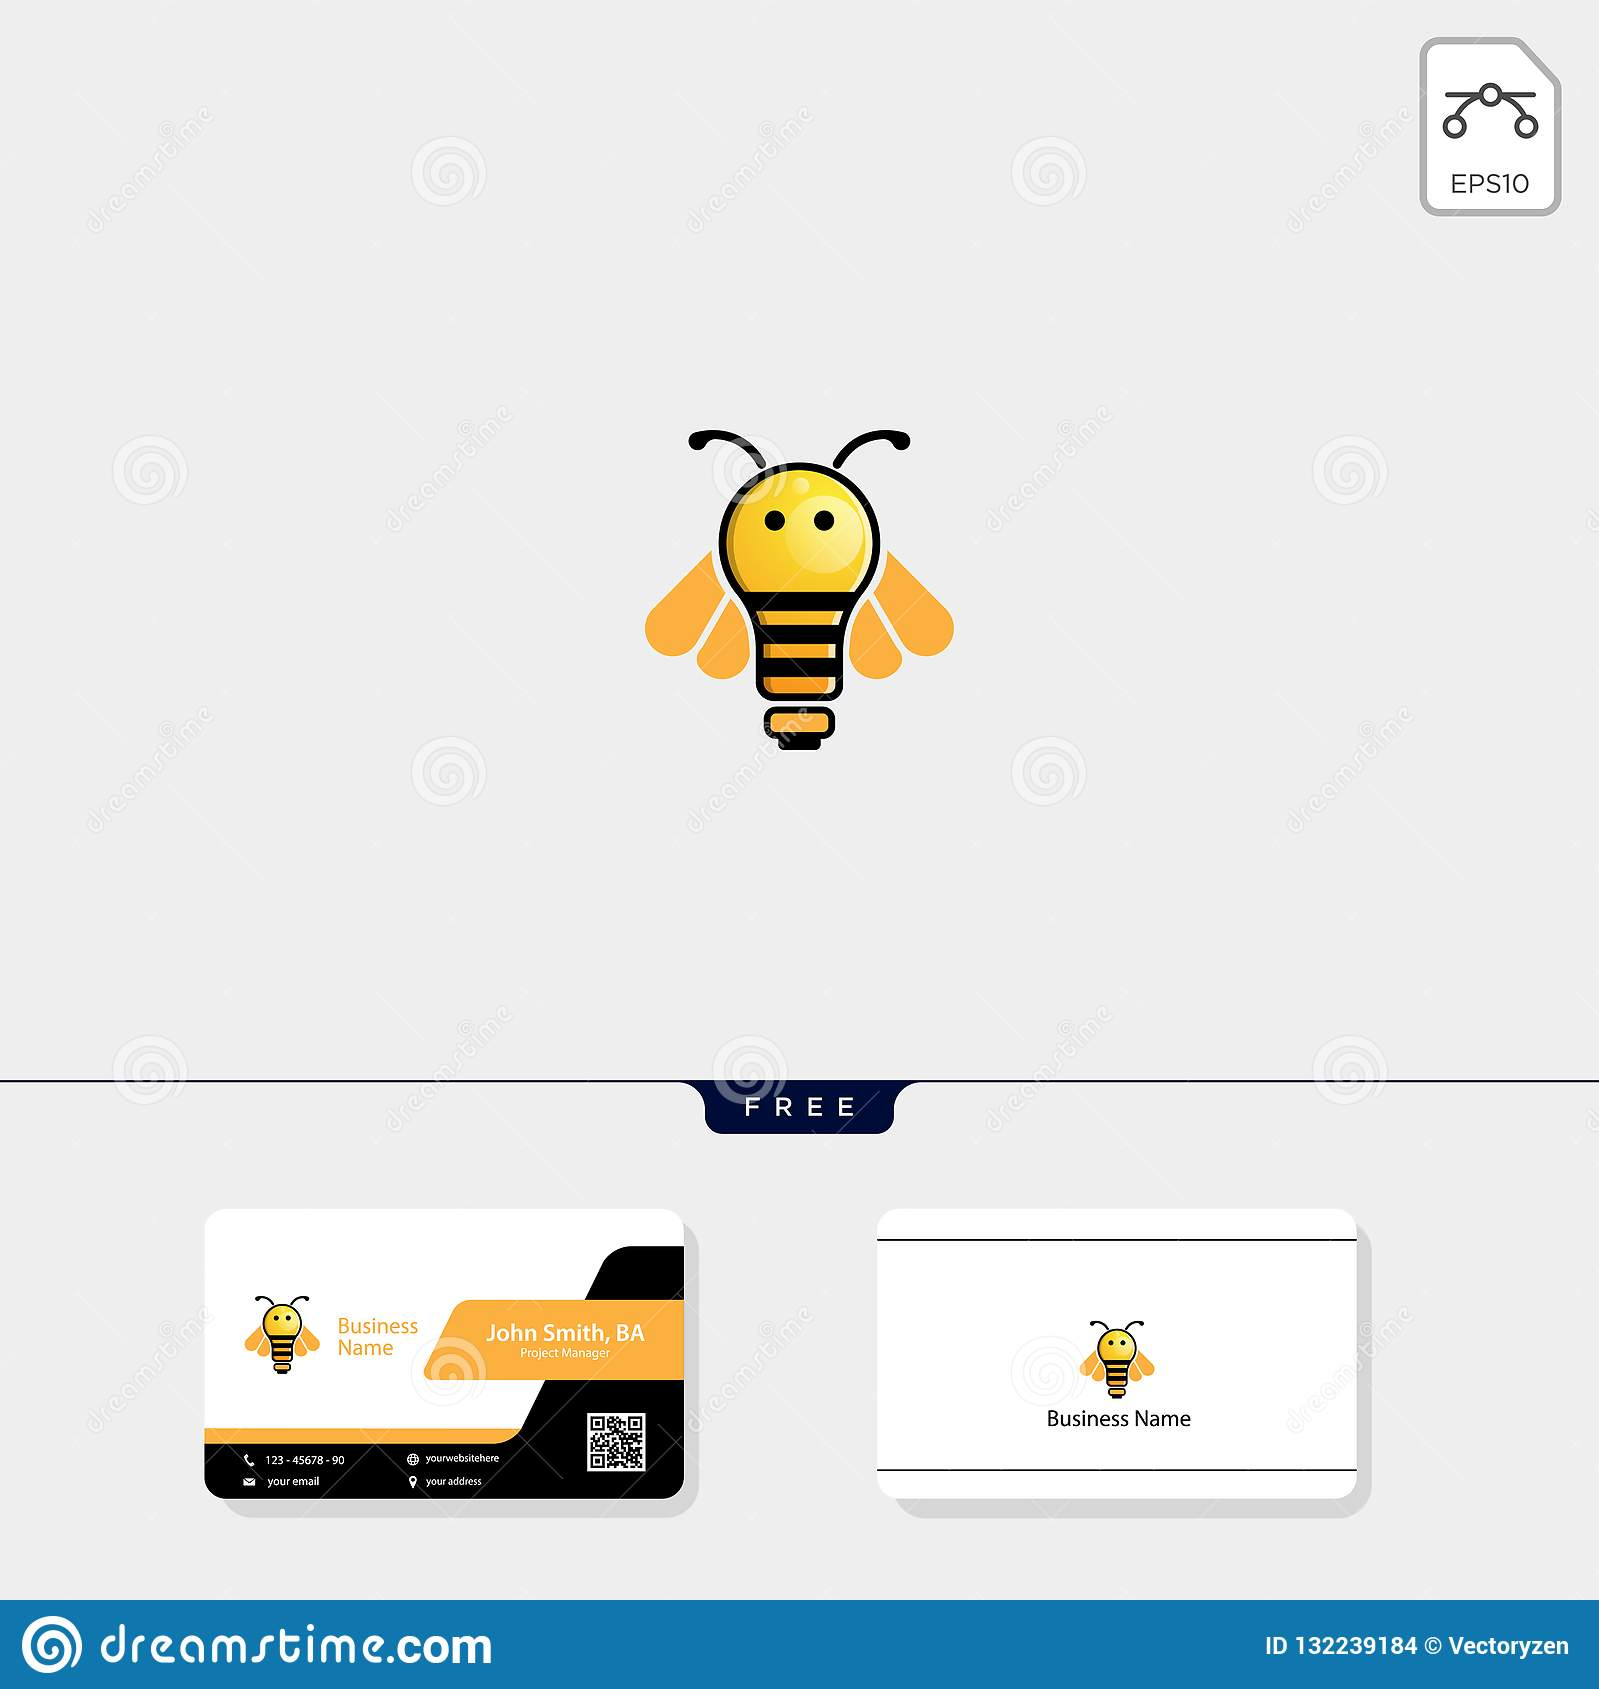 light, bee, flying bee logo template vector illustration, free business card design